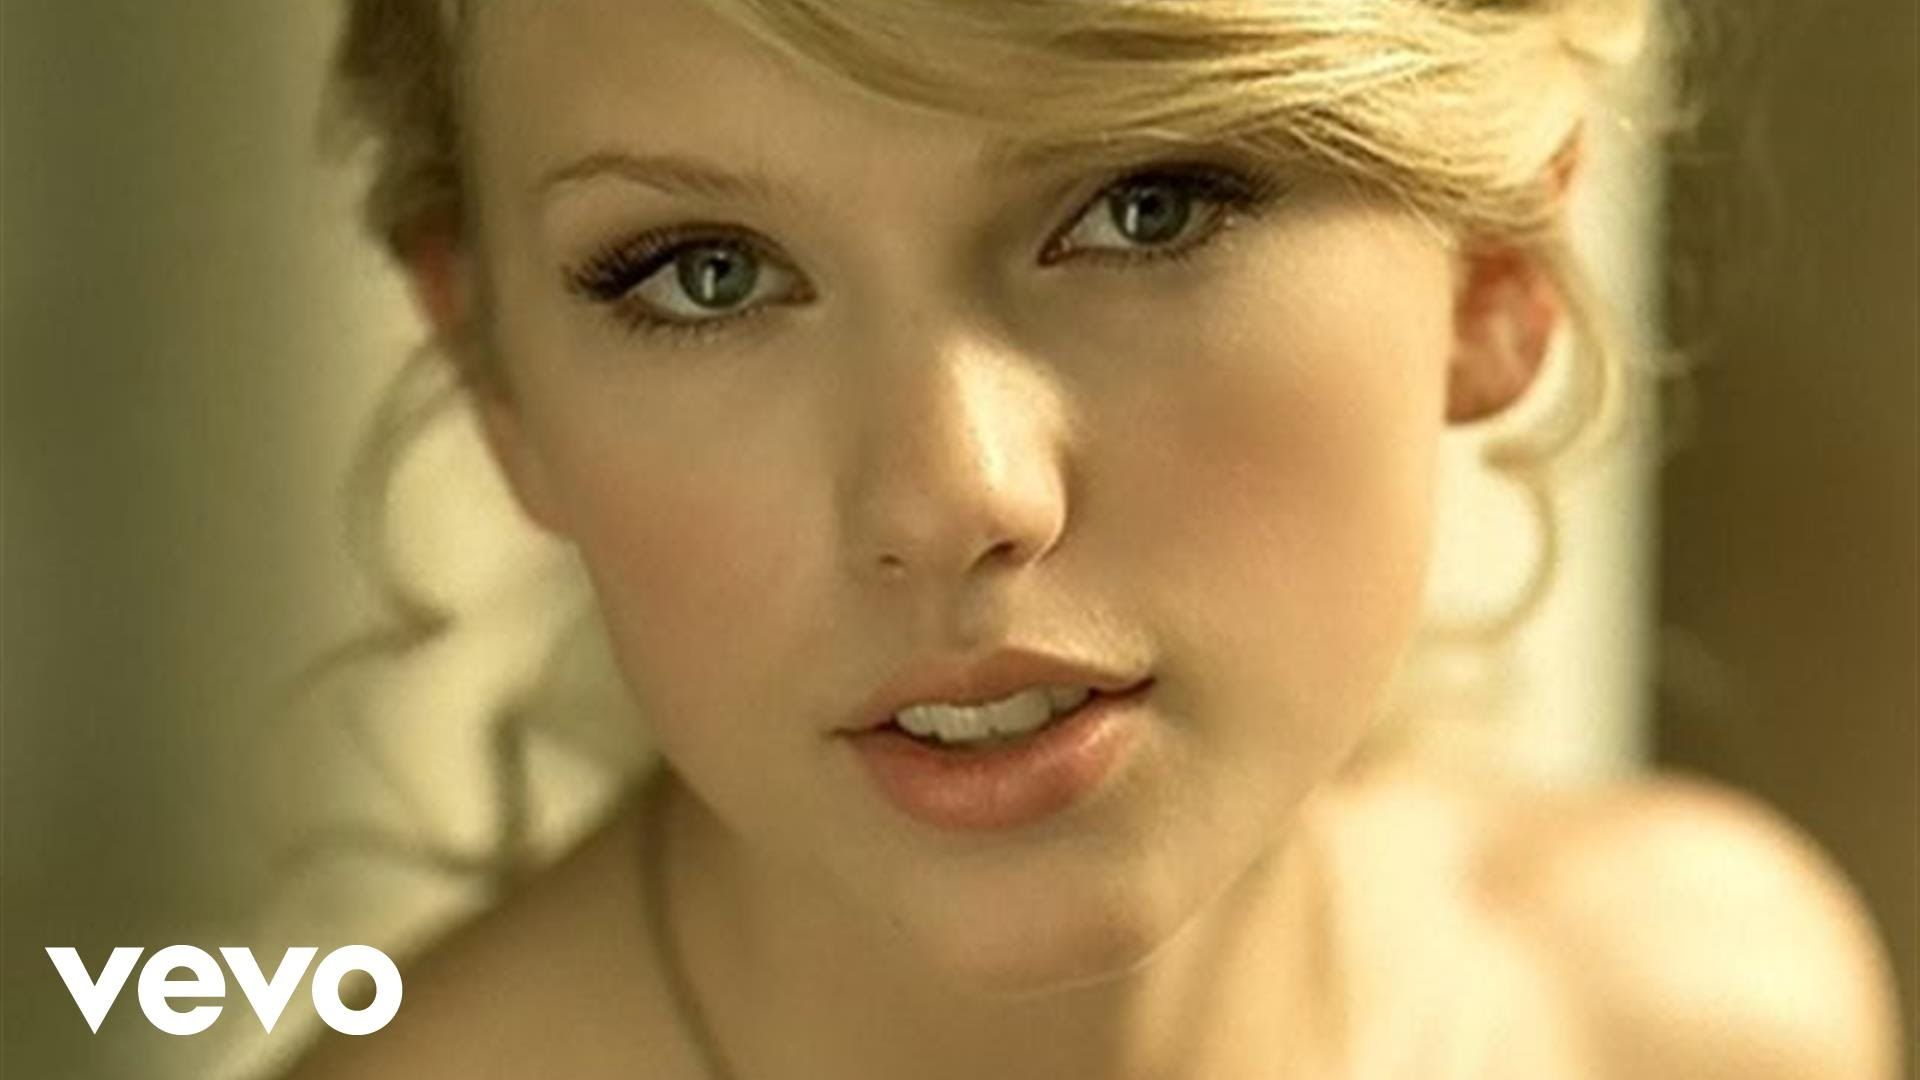 Taylor swift love story album fearless released 2008 for Academy of country music award for video of the year